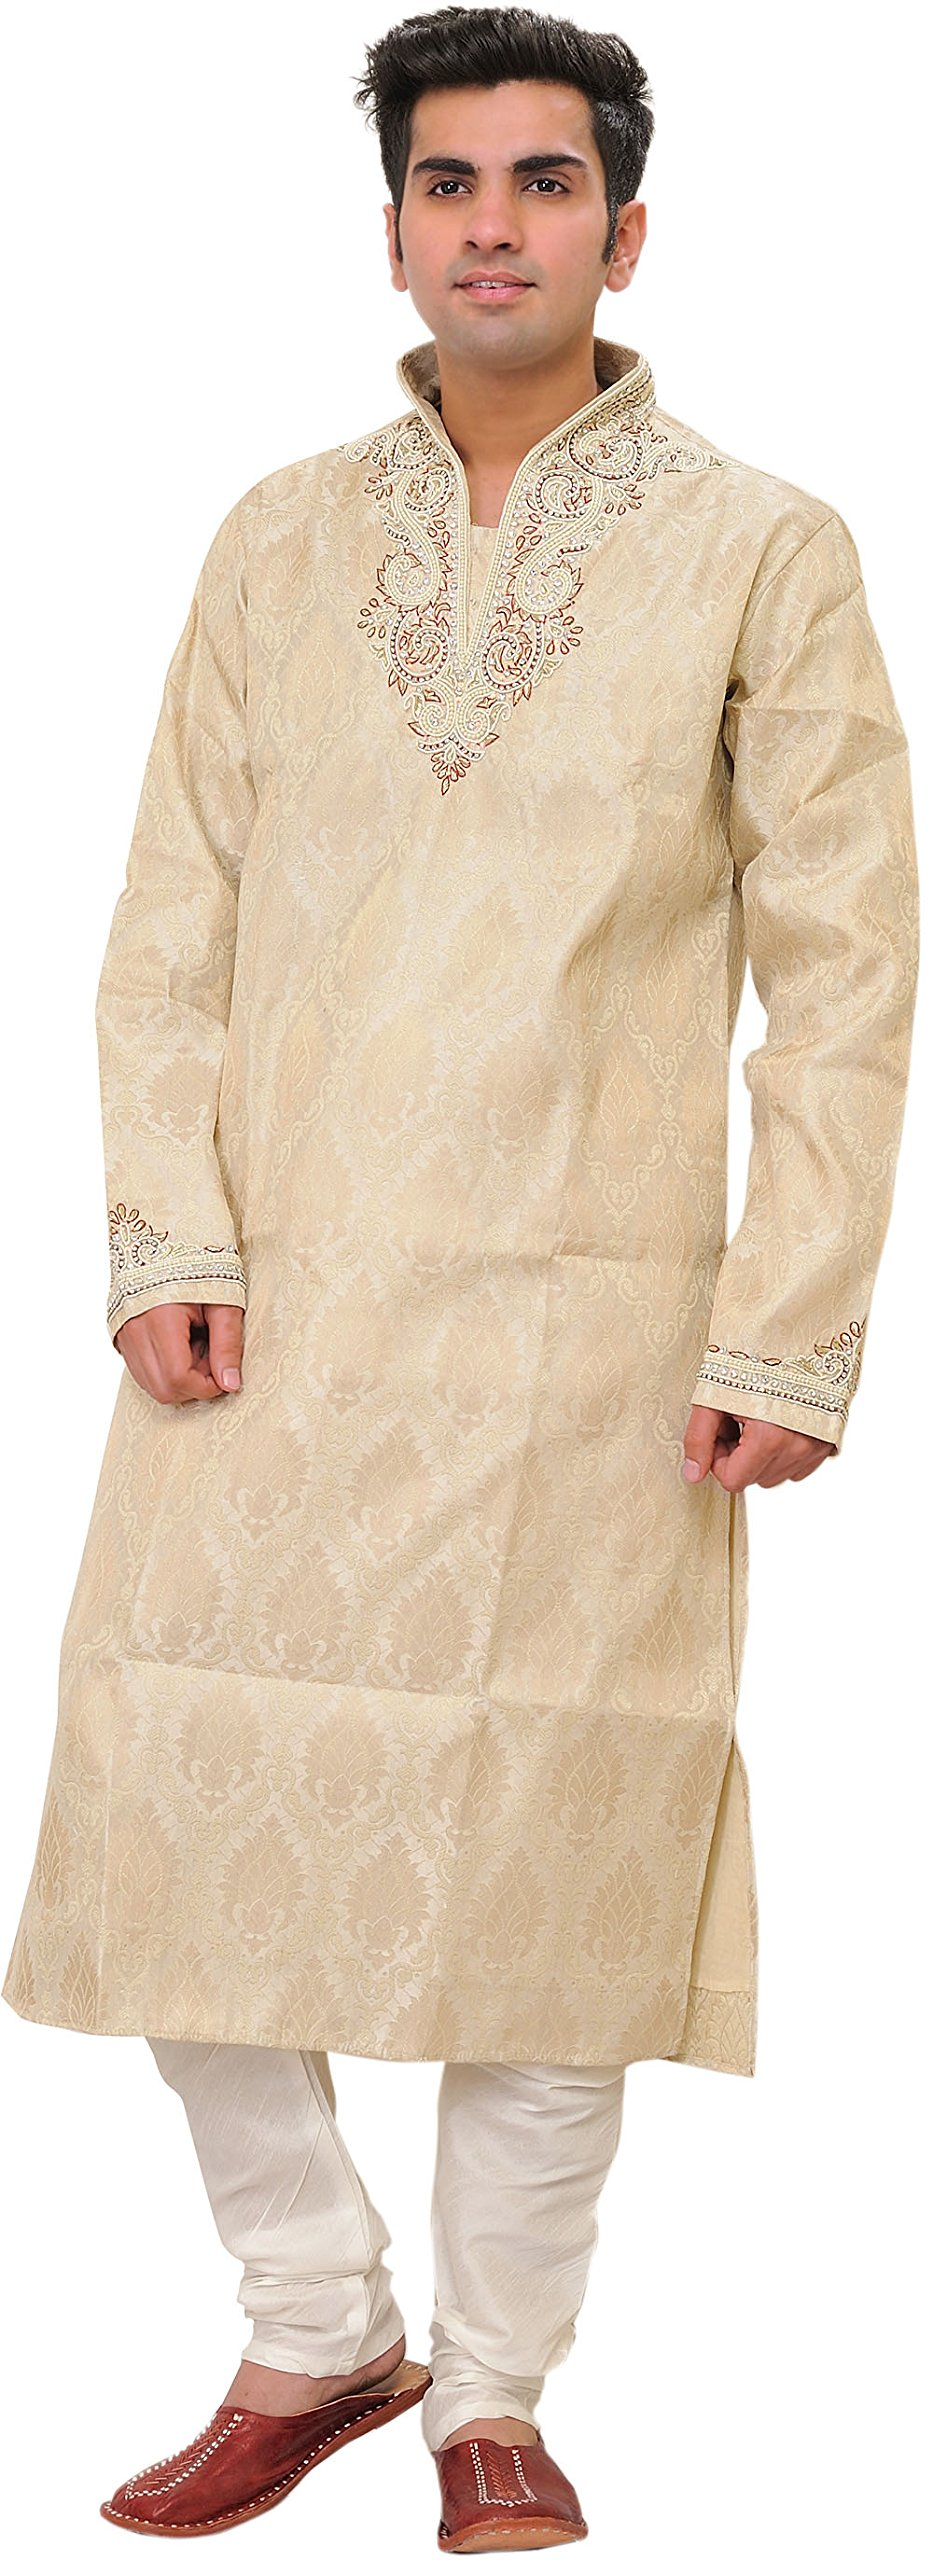 Exotic India Sandshell Wedding Kurta Pajama - Off-White Size 40